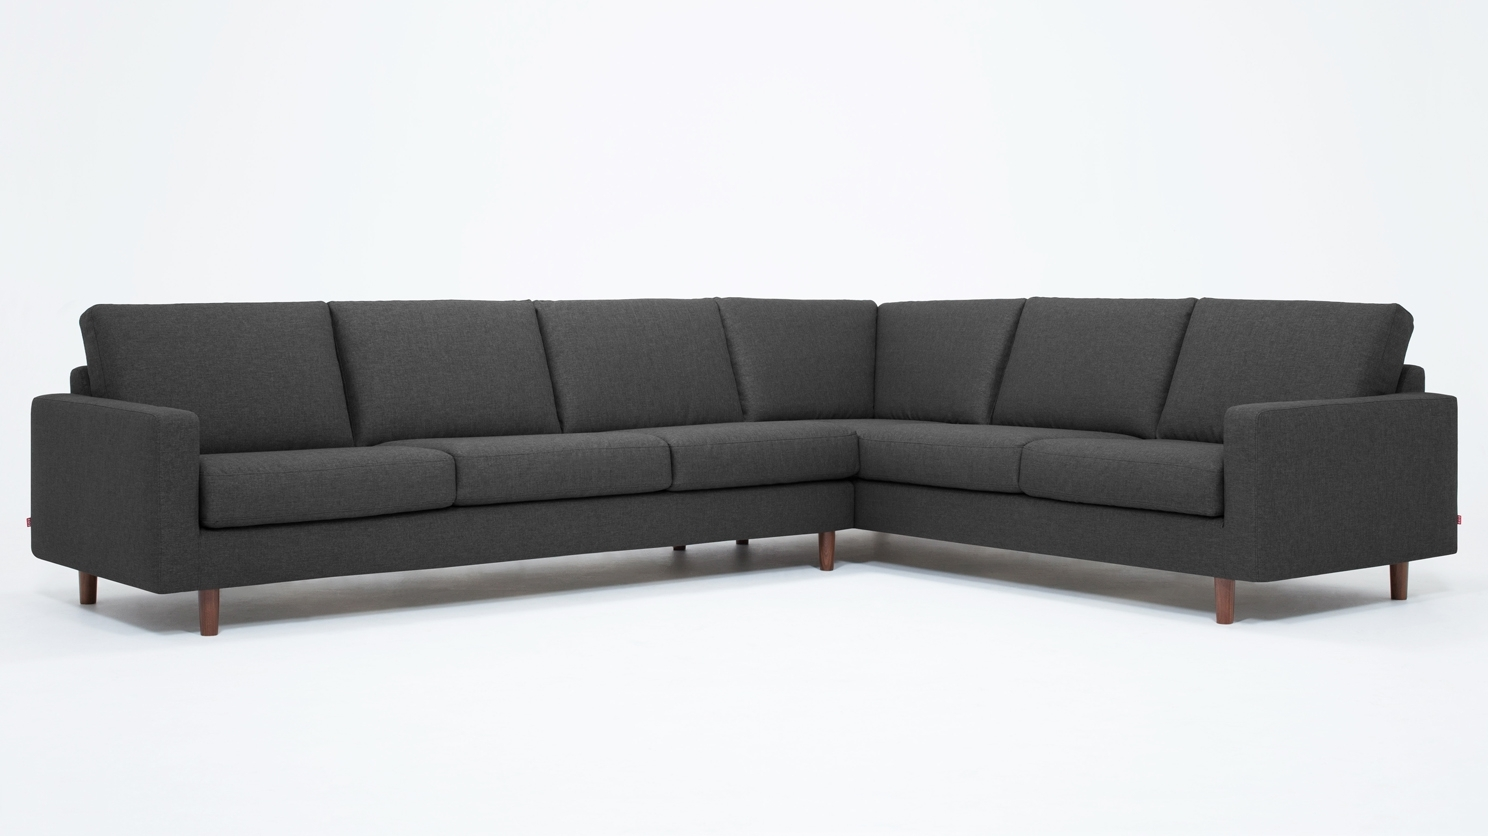 Oskar 2 Piece Sectional Sofa – Fabric Throughout Most Current Eq3 Sectional Sofas (View 7 of 20)